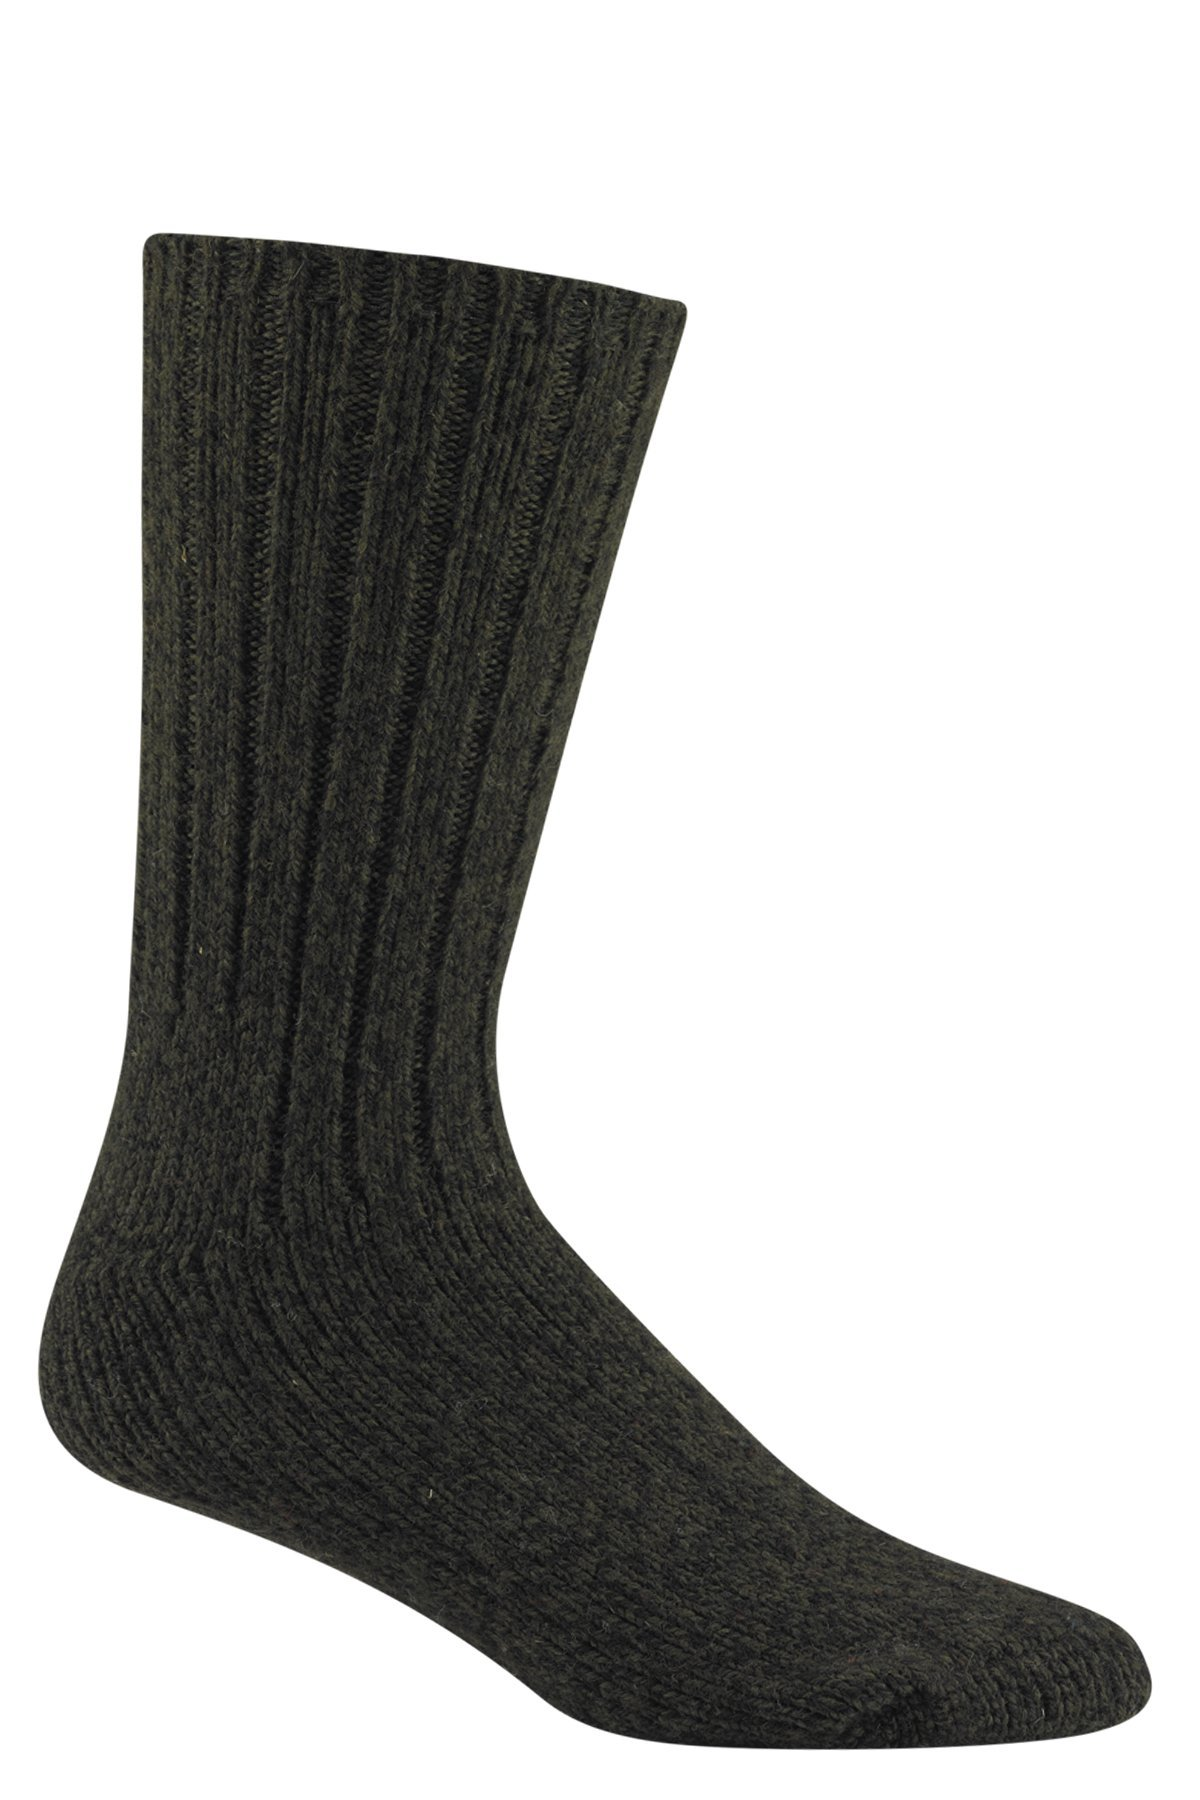 Wigwam El-Pine Socks Olive Heather MD with a Helicase brand sock ring